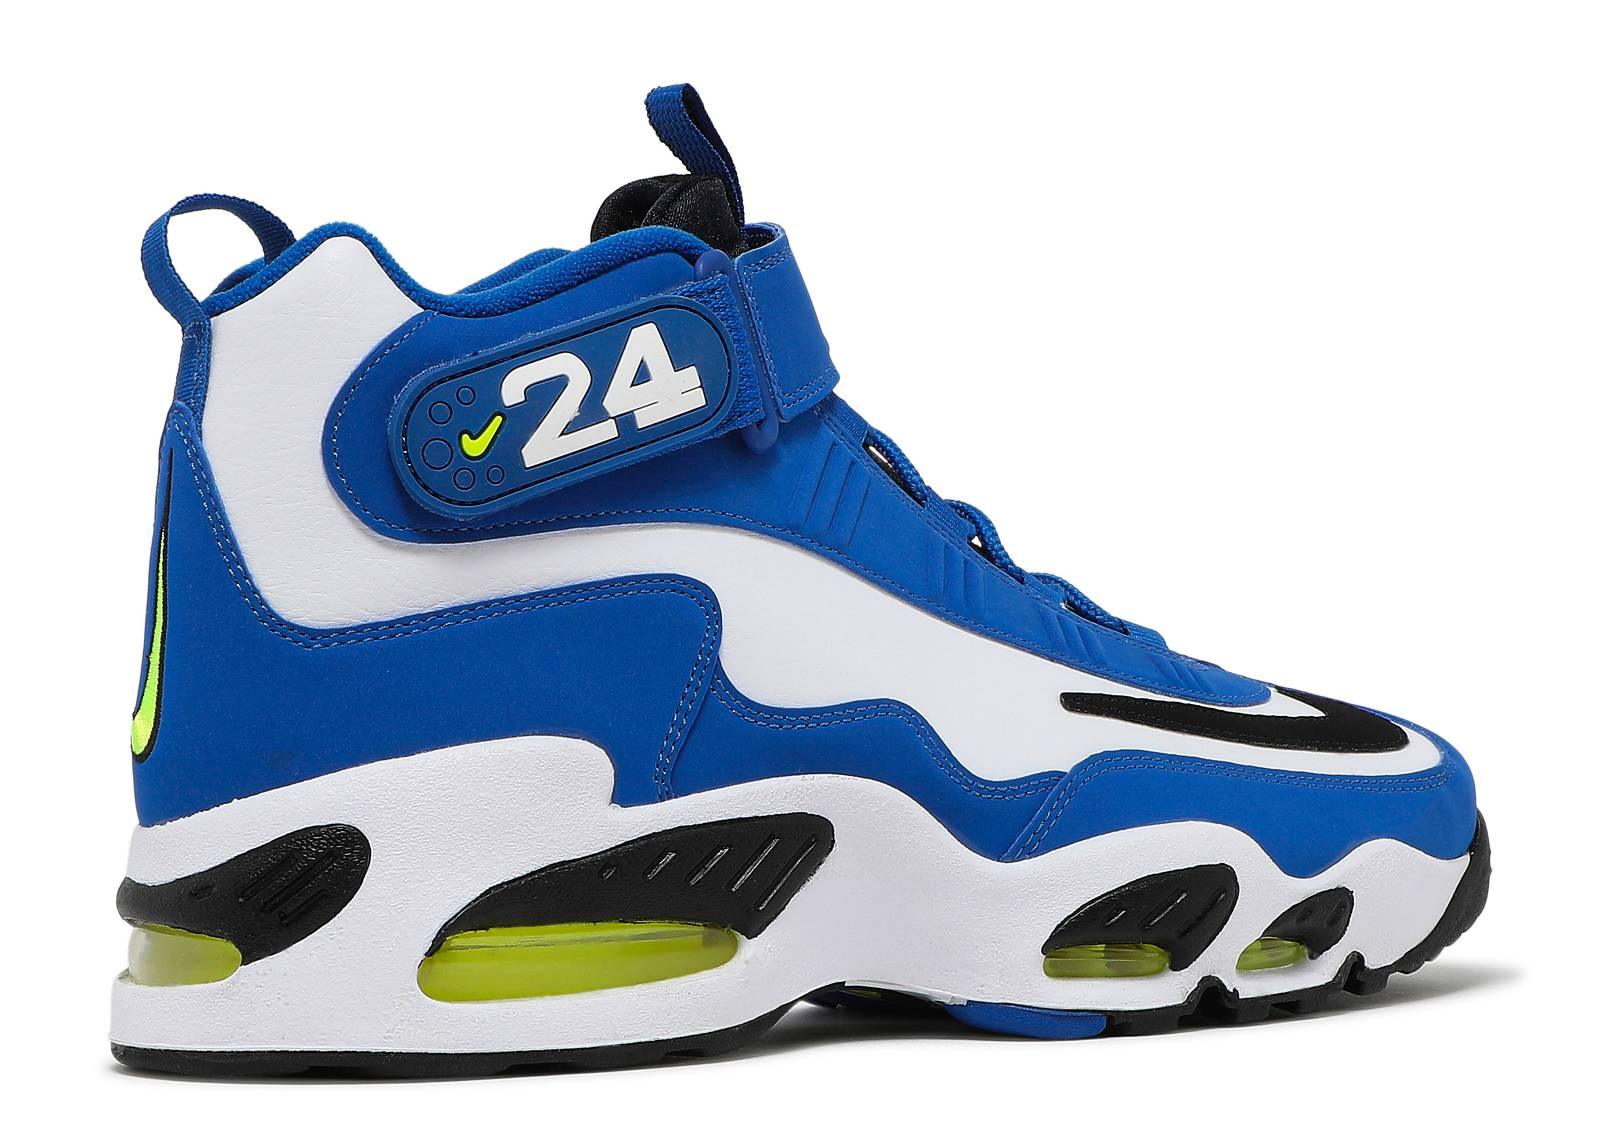 Nike Air Griffey Max 1 Colorways, Release Dates, Pricing